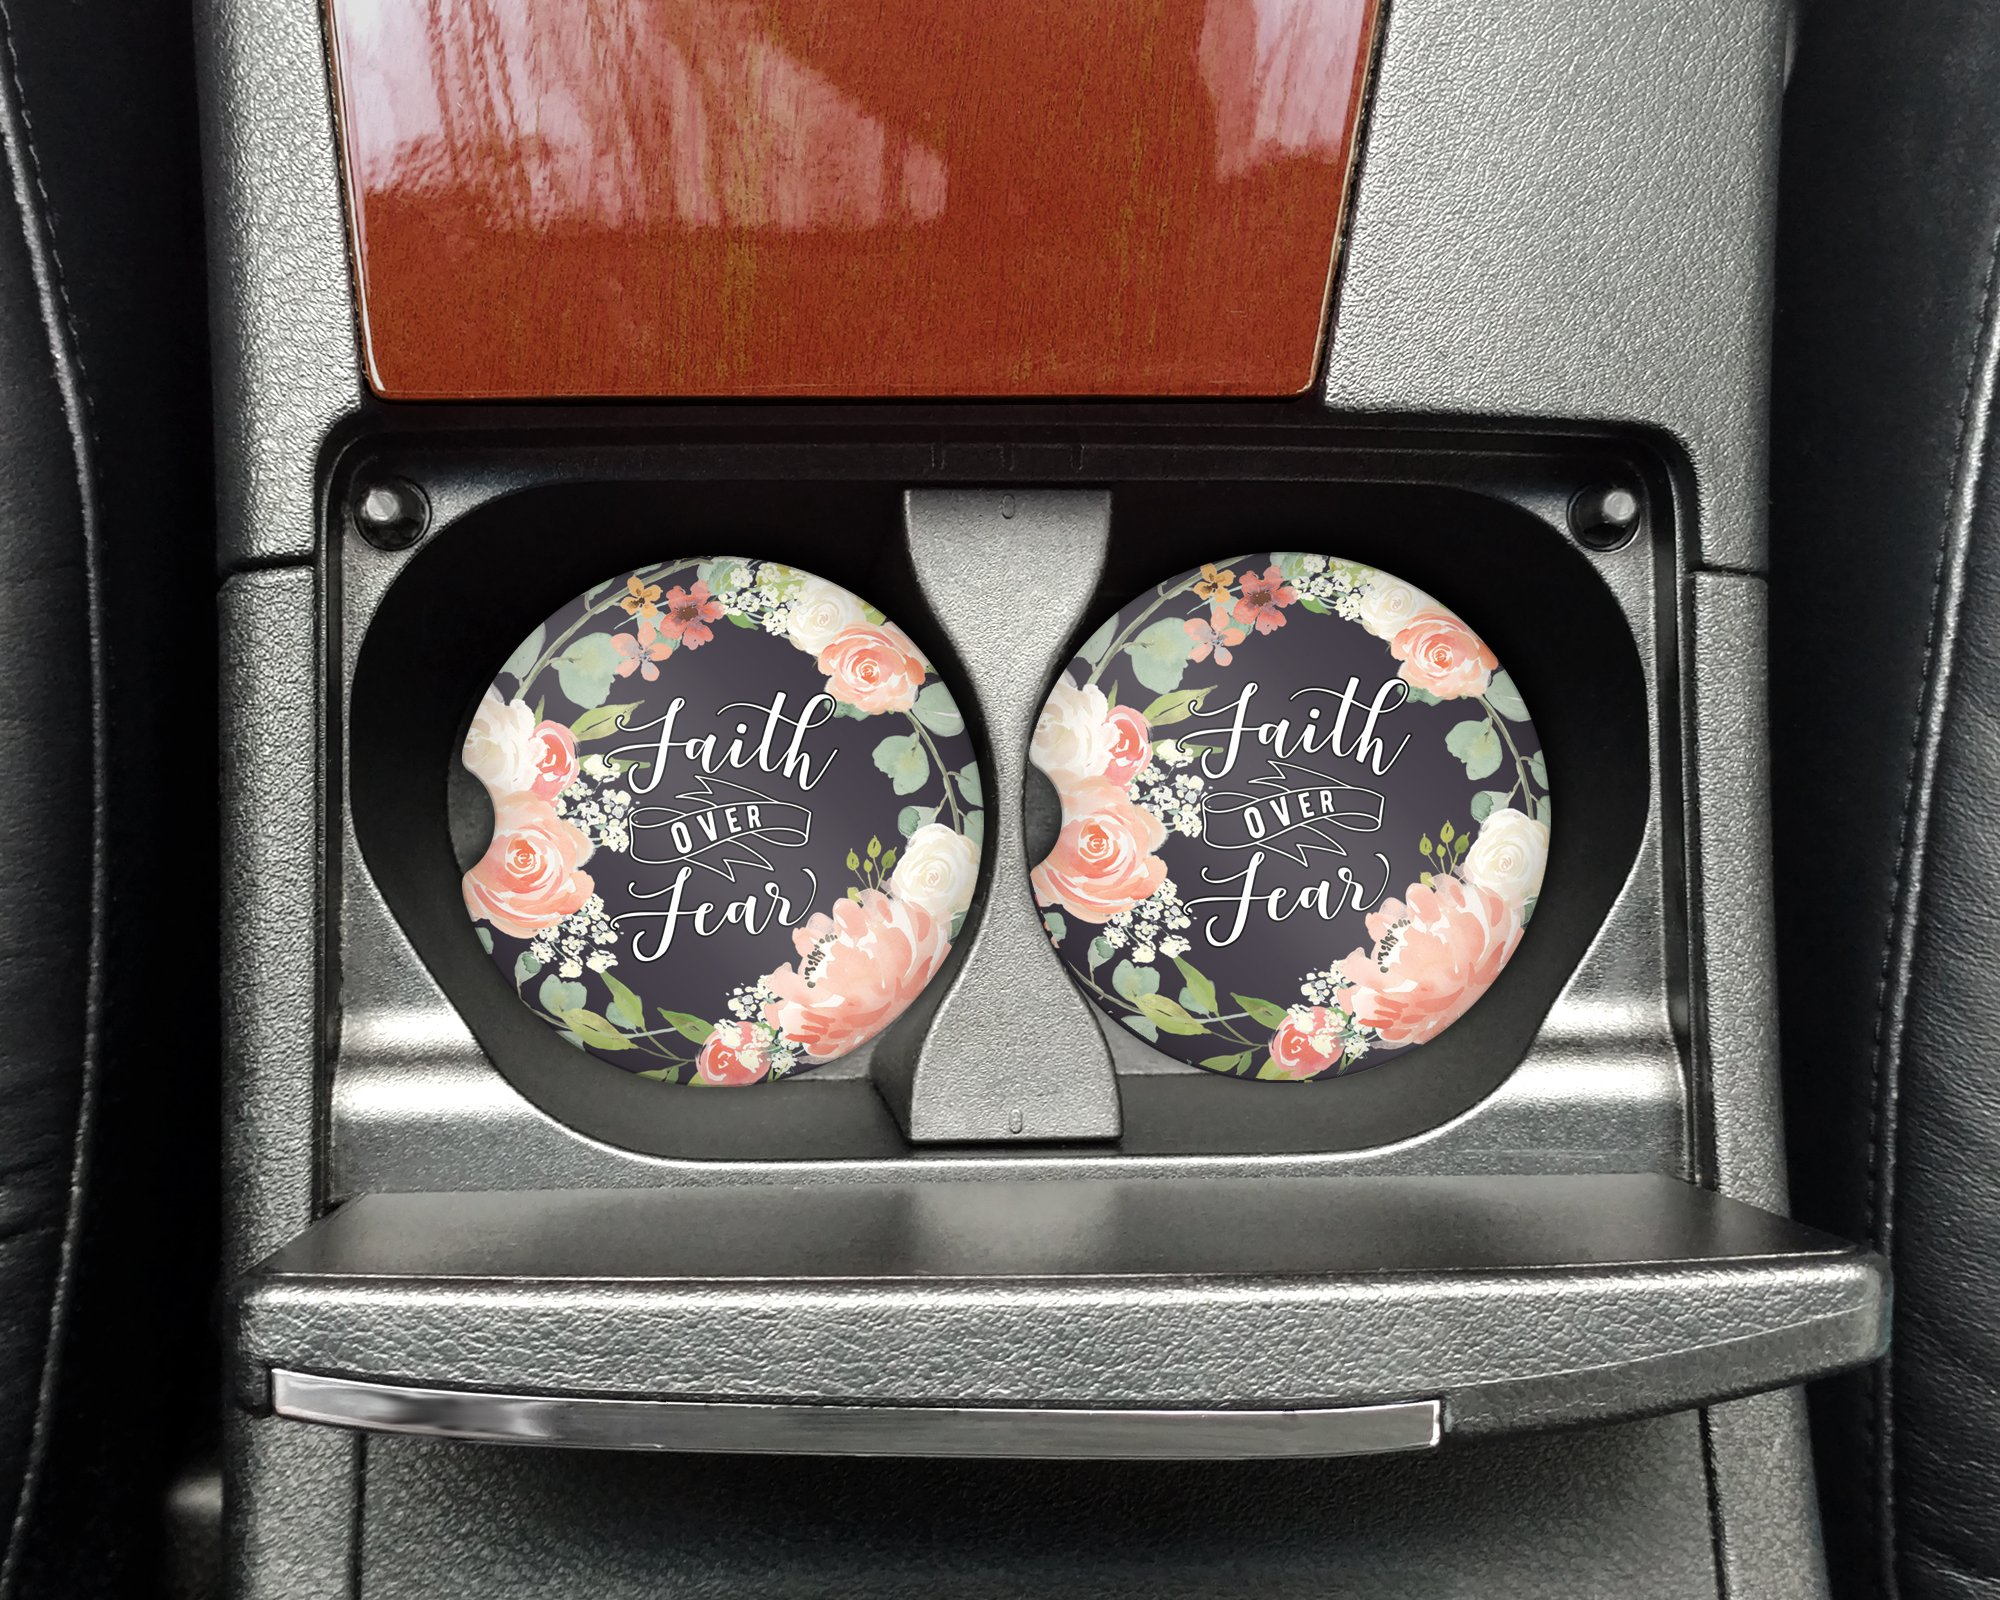 Christian quote - Faith over Fear - Car coasters - Sandstone auto cup holder coasters bible verse - Gifts for women